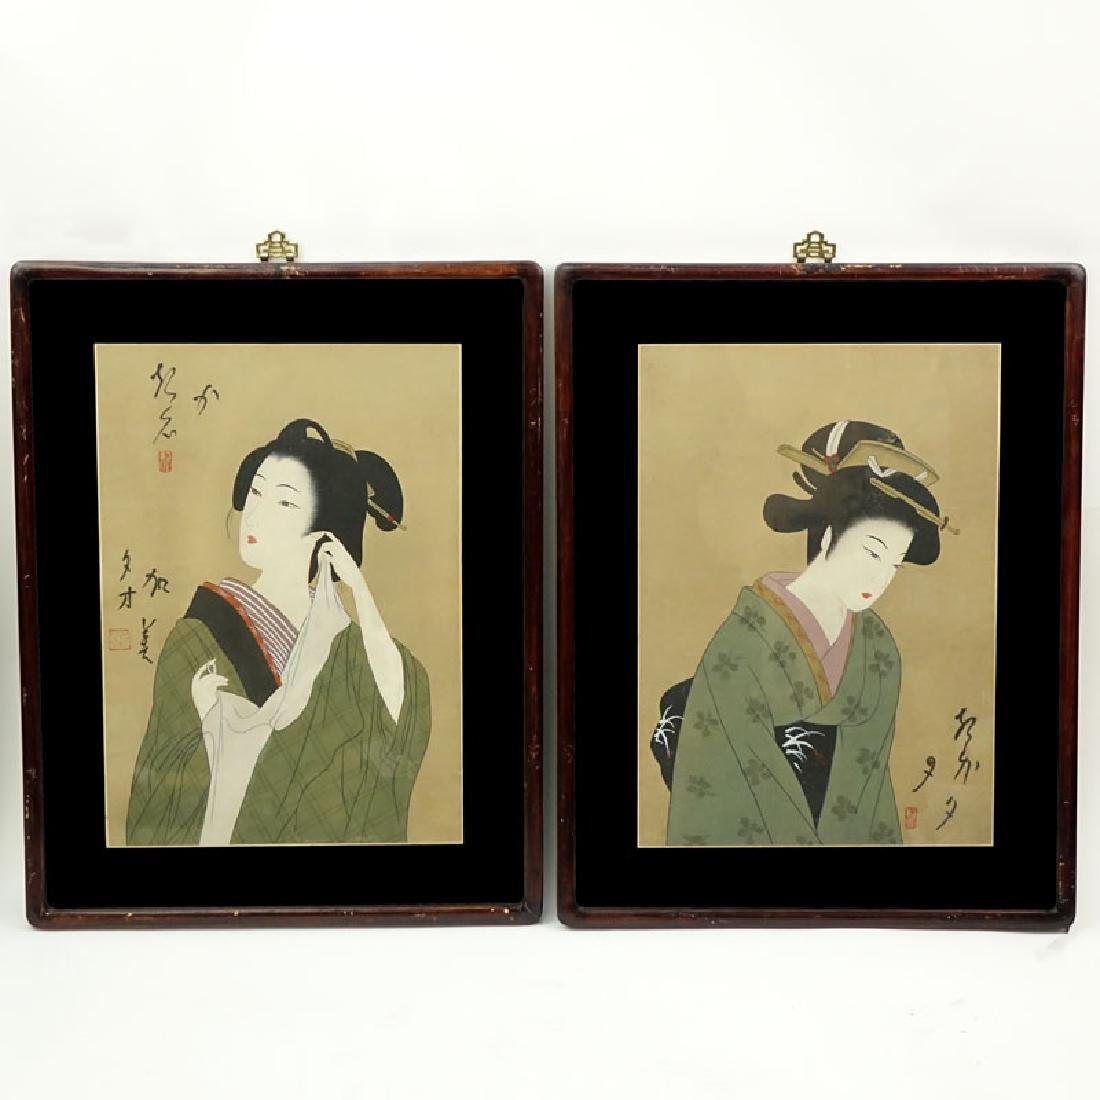 Two (2) Vintage Japanese Watercolor/Gouache On Paper